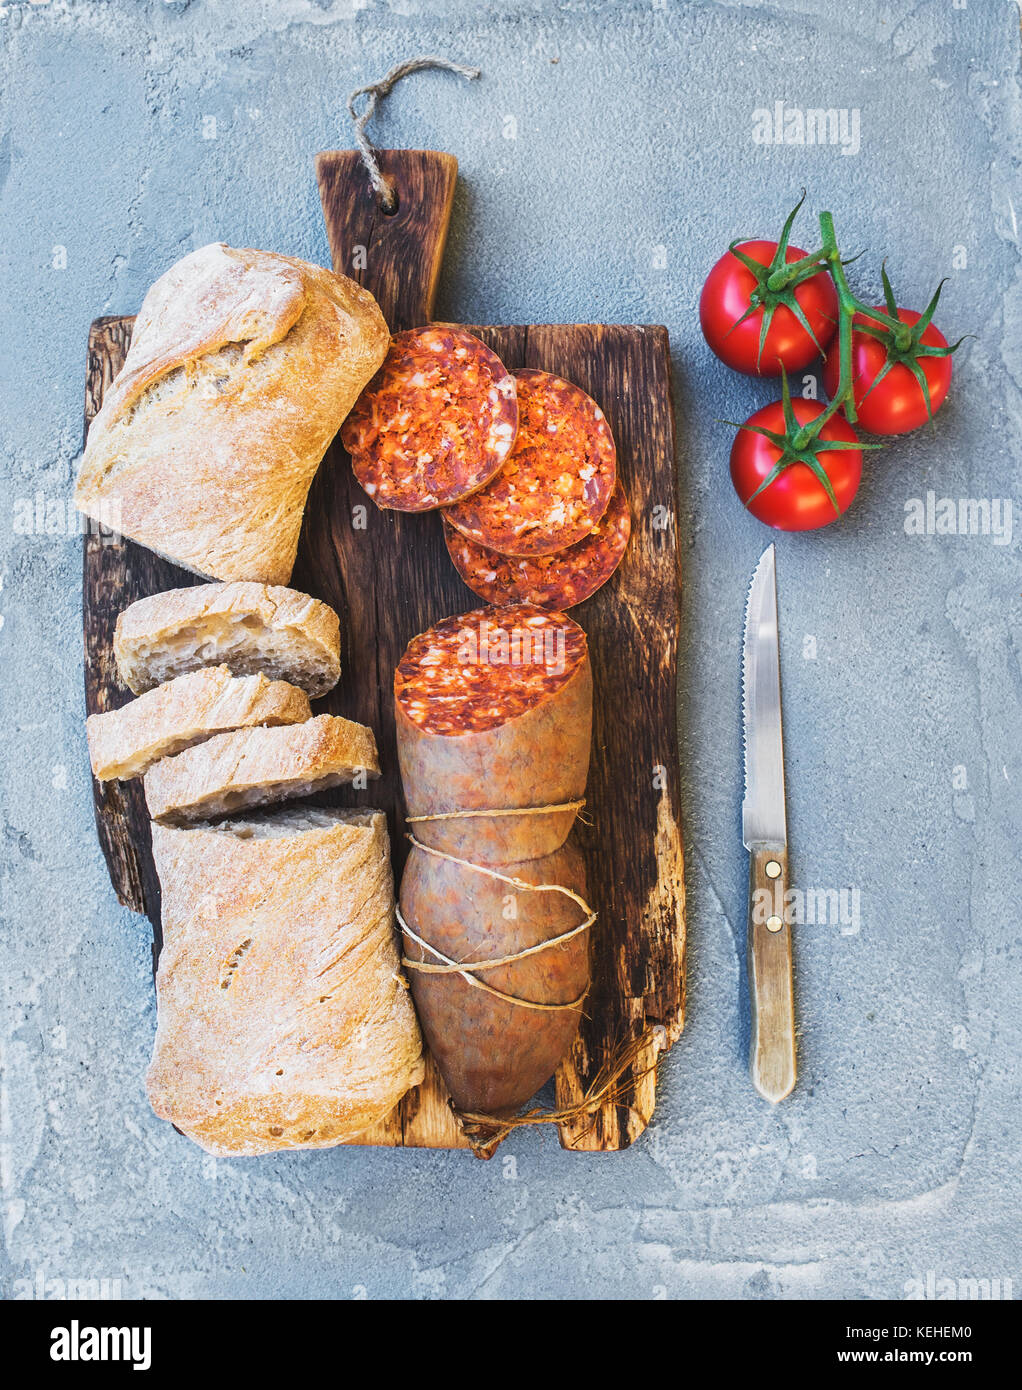 Wine snack set. Hungarian mangalica pork salami sausage, rustic bread and fresh tomatoes on dark wooden board over - Stock Image